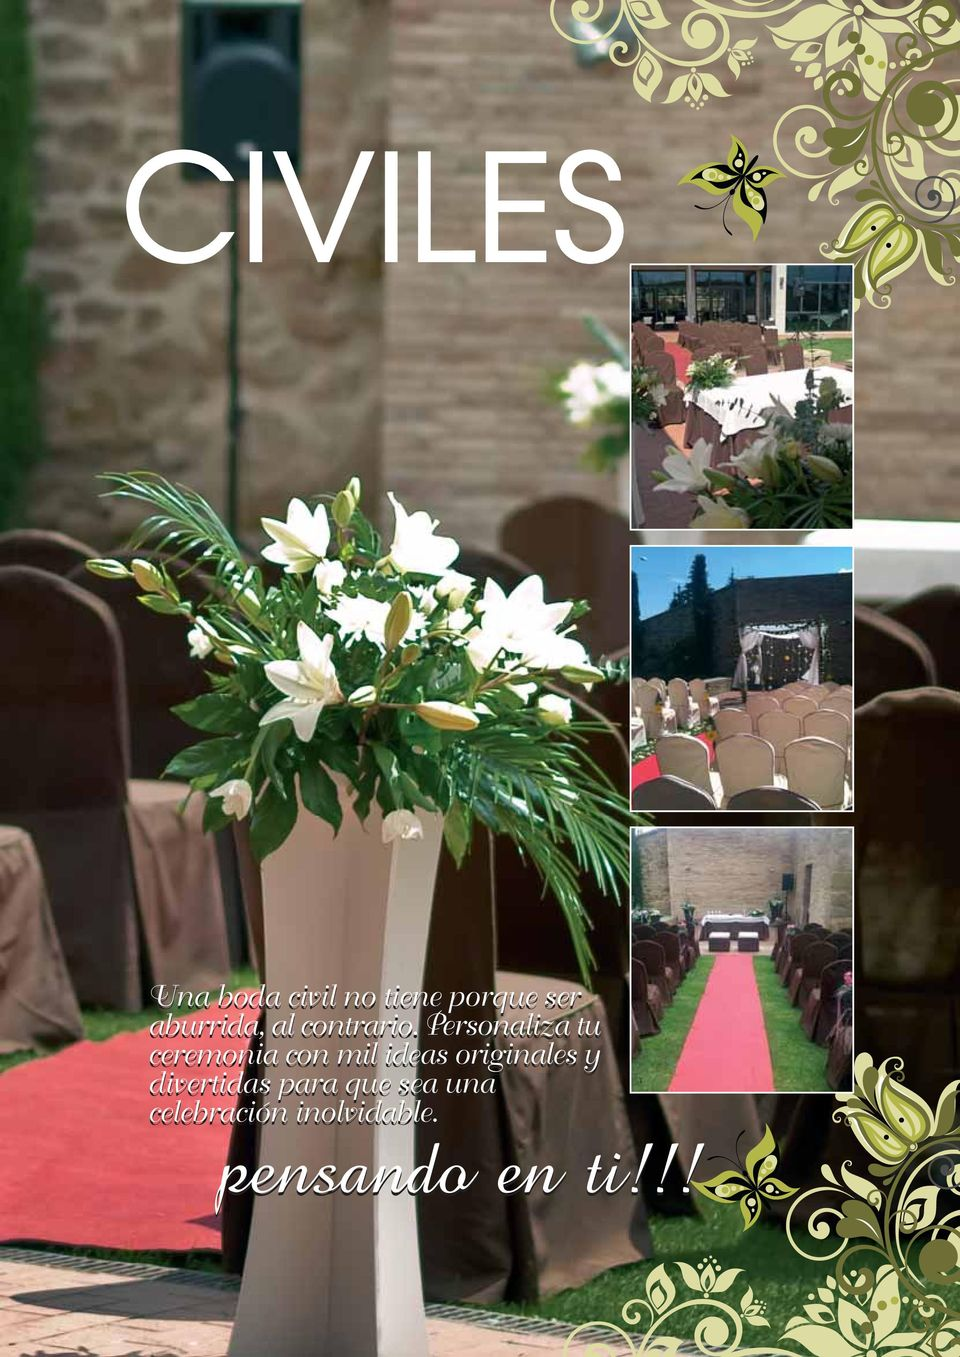 Personaliza tu ceremonia con mil ideas originales y